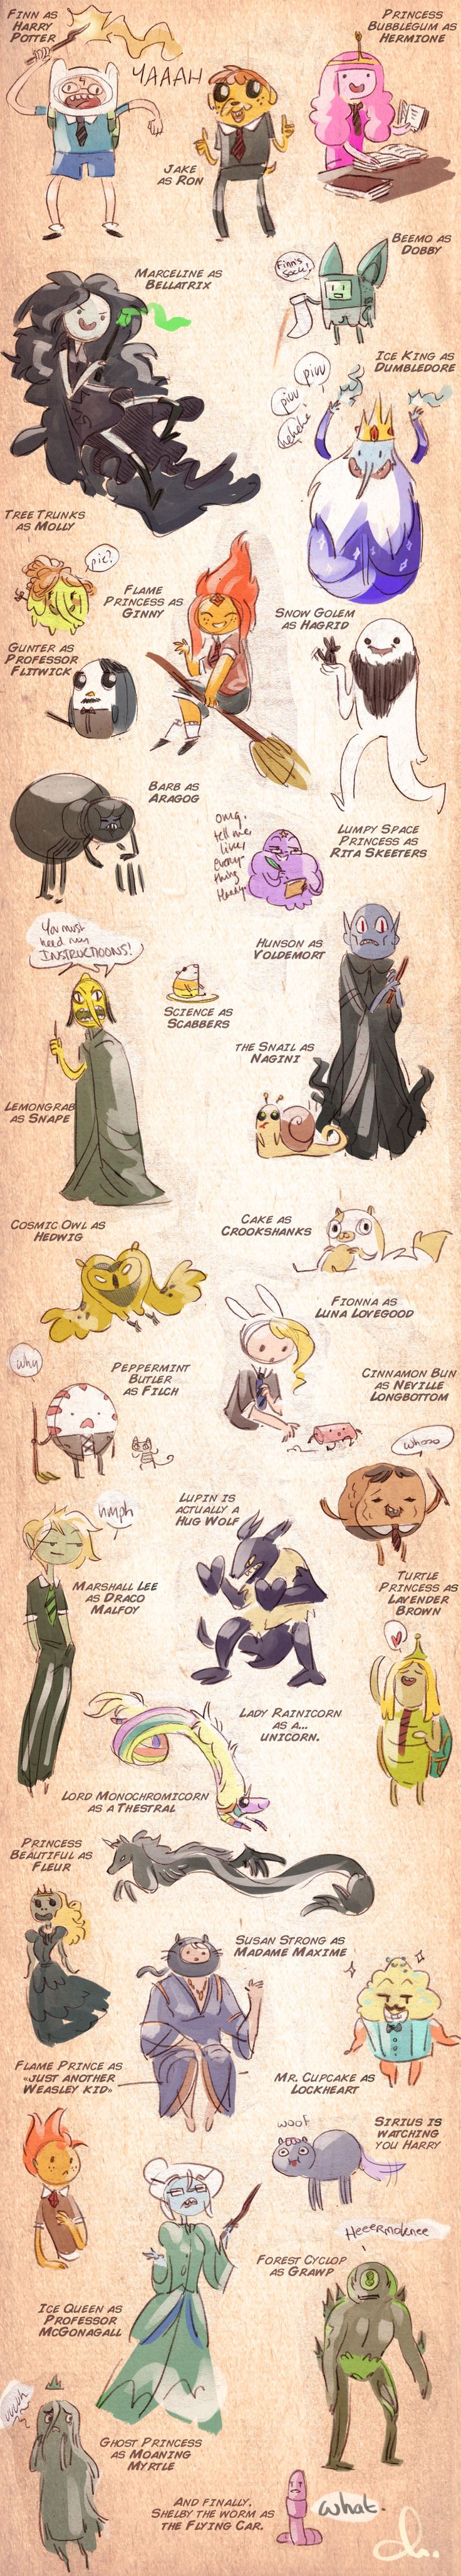 Adventure time + Harry Potter. this sort of works and sort of doesnt (doesnt work in the fact that hermione and ron are supposed to end up together...)